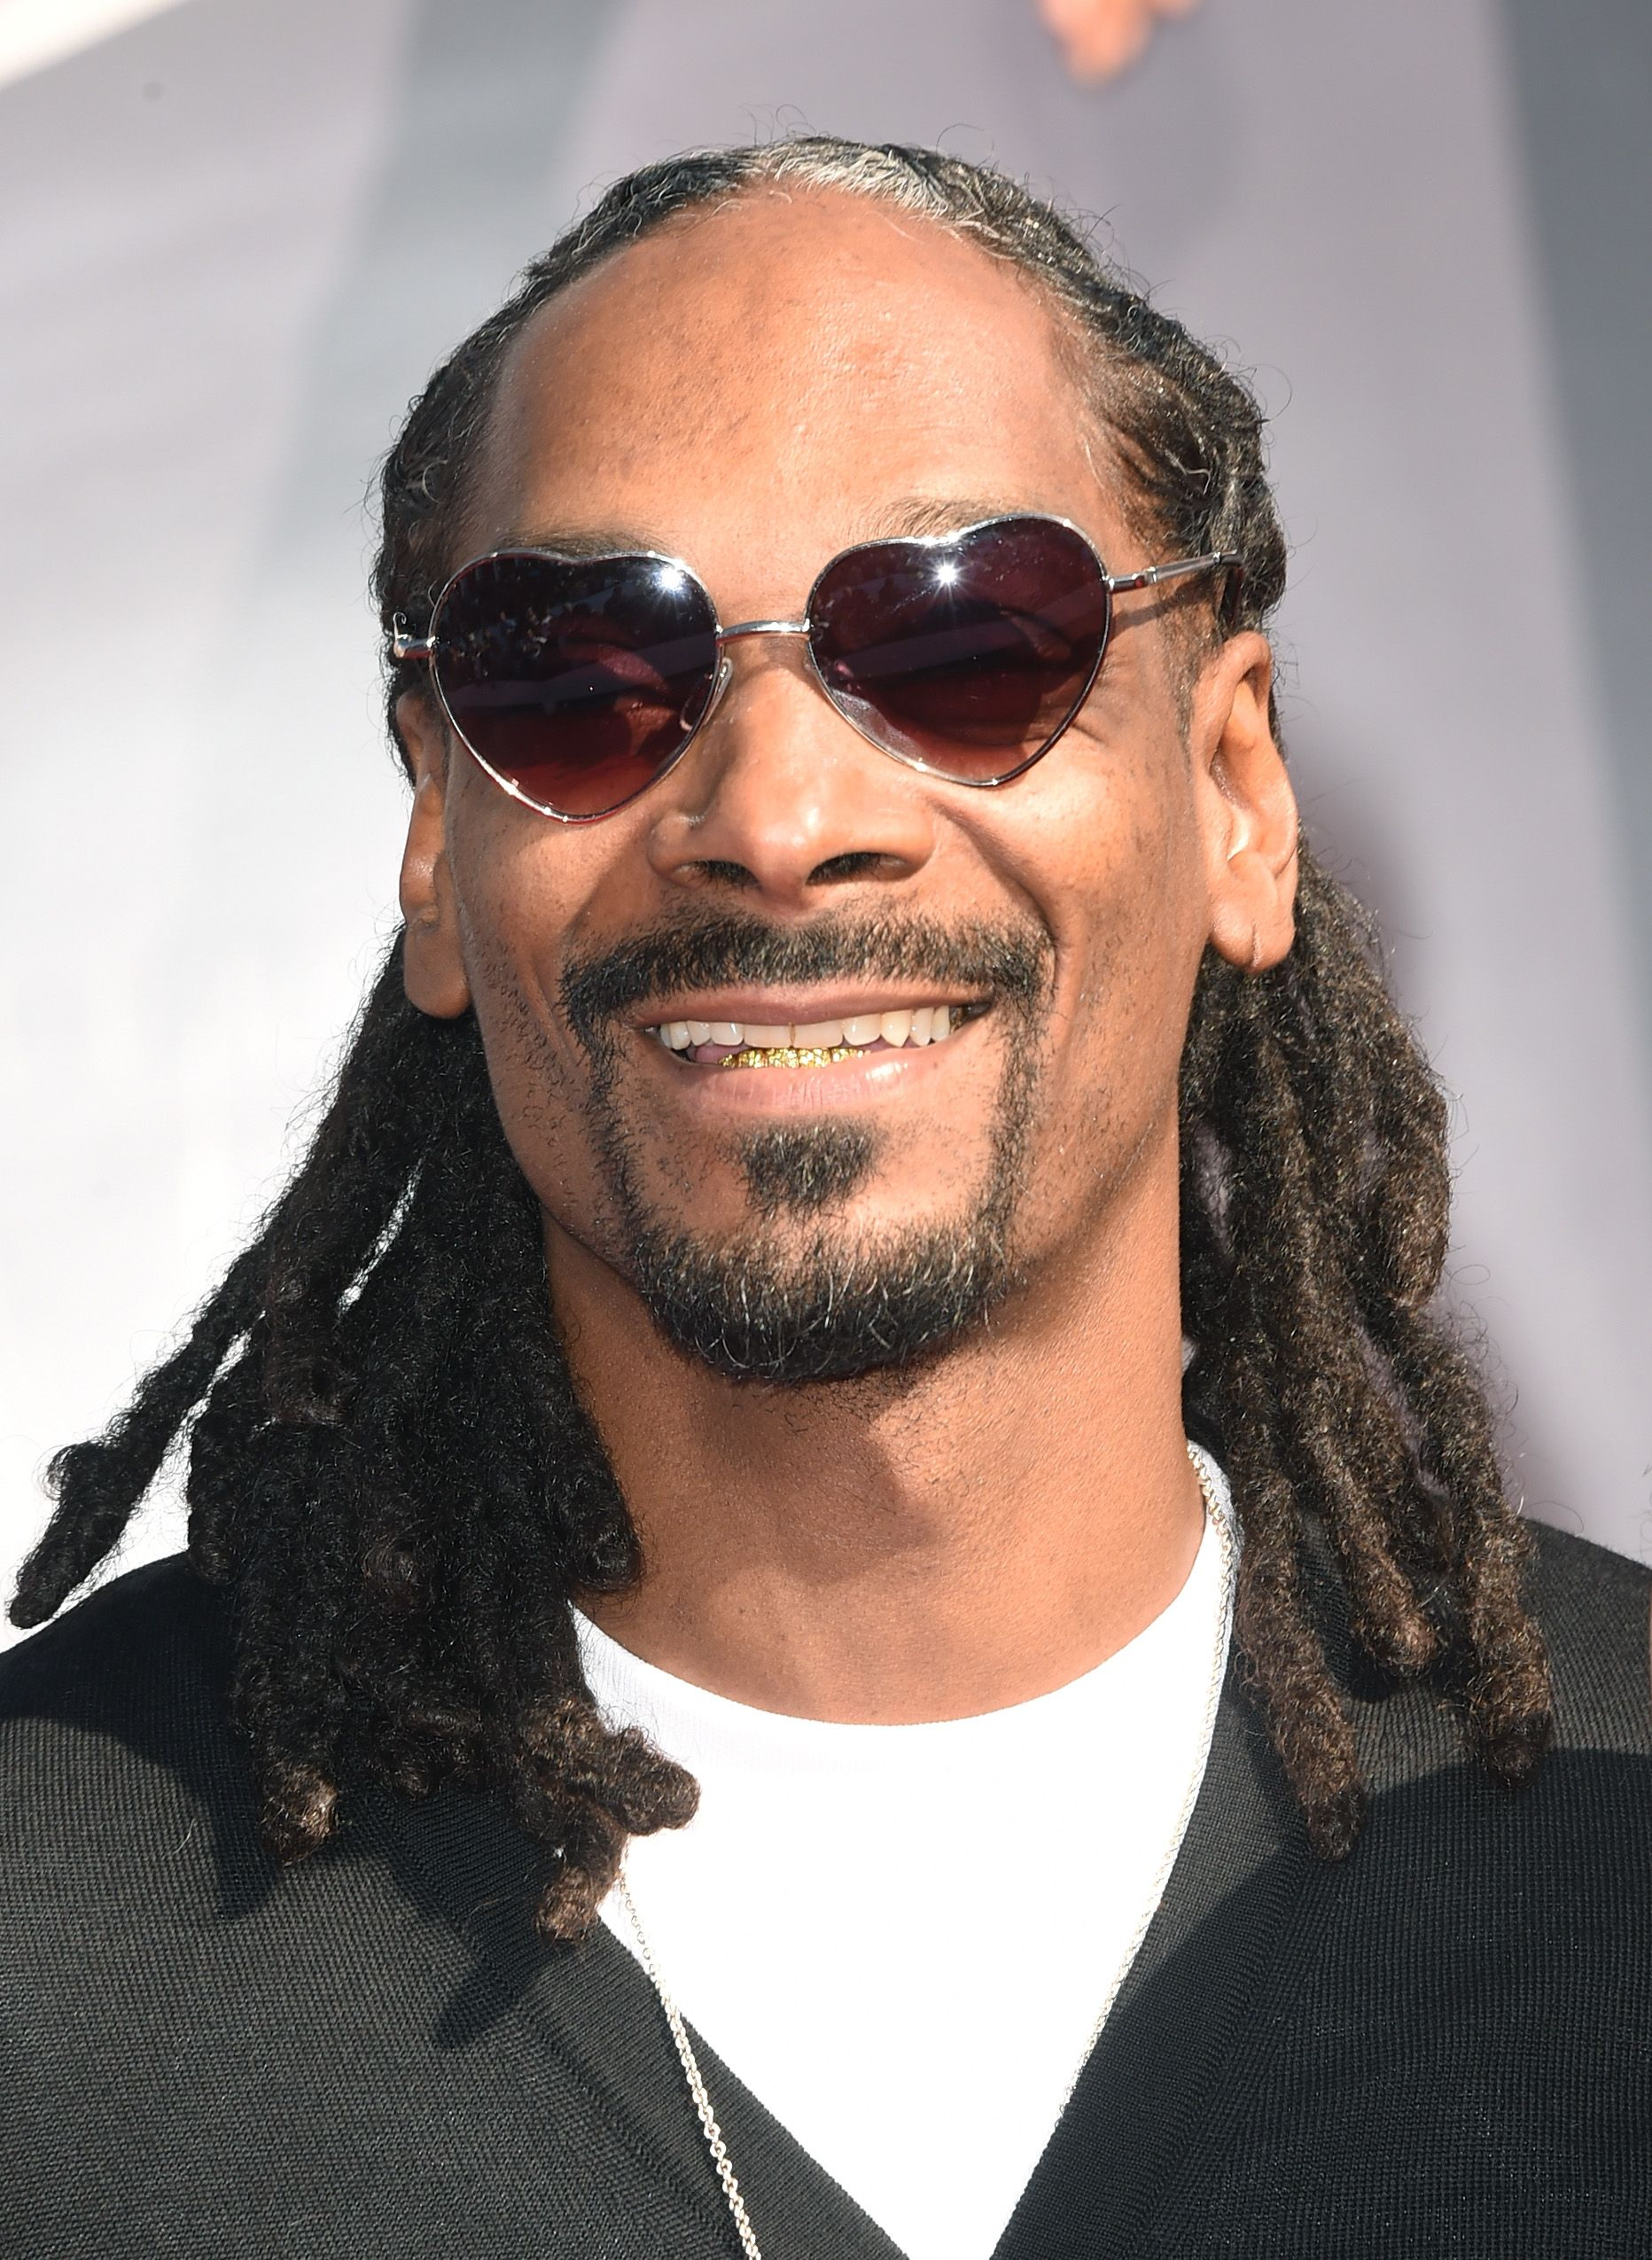 Rapper Snoop Dogg attends the 2014 MTV Video Music Awards at The Forum on August 24, 2014  | Photo: Getty Images.